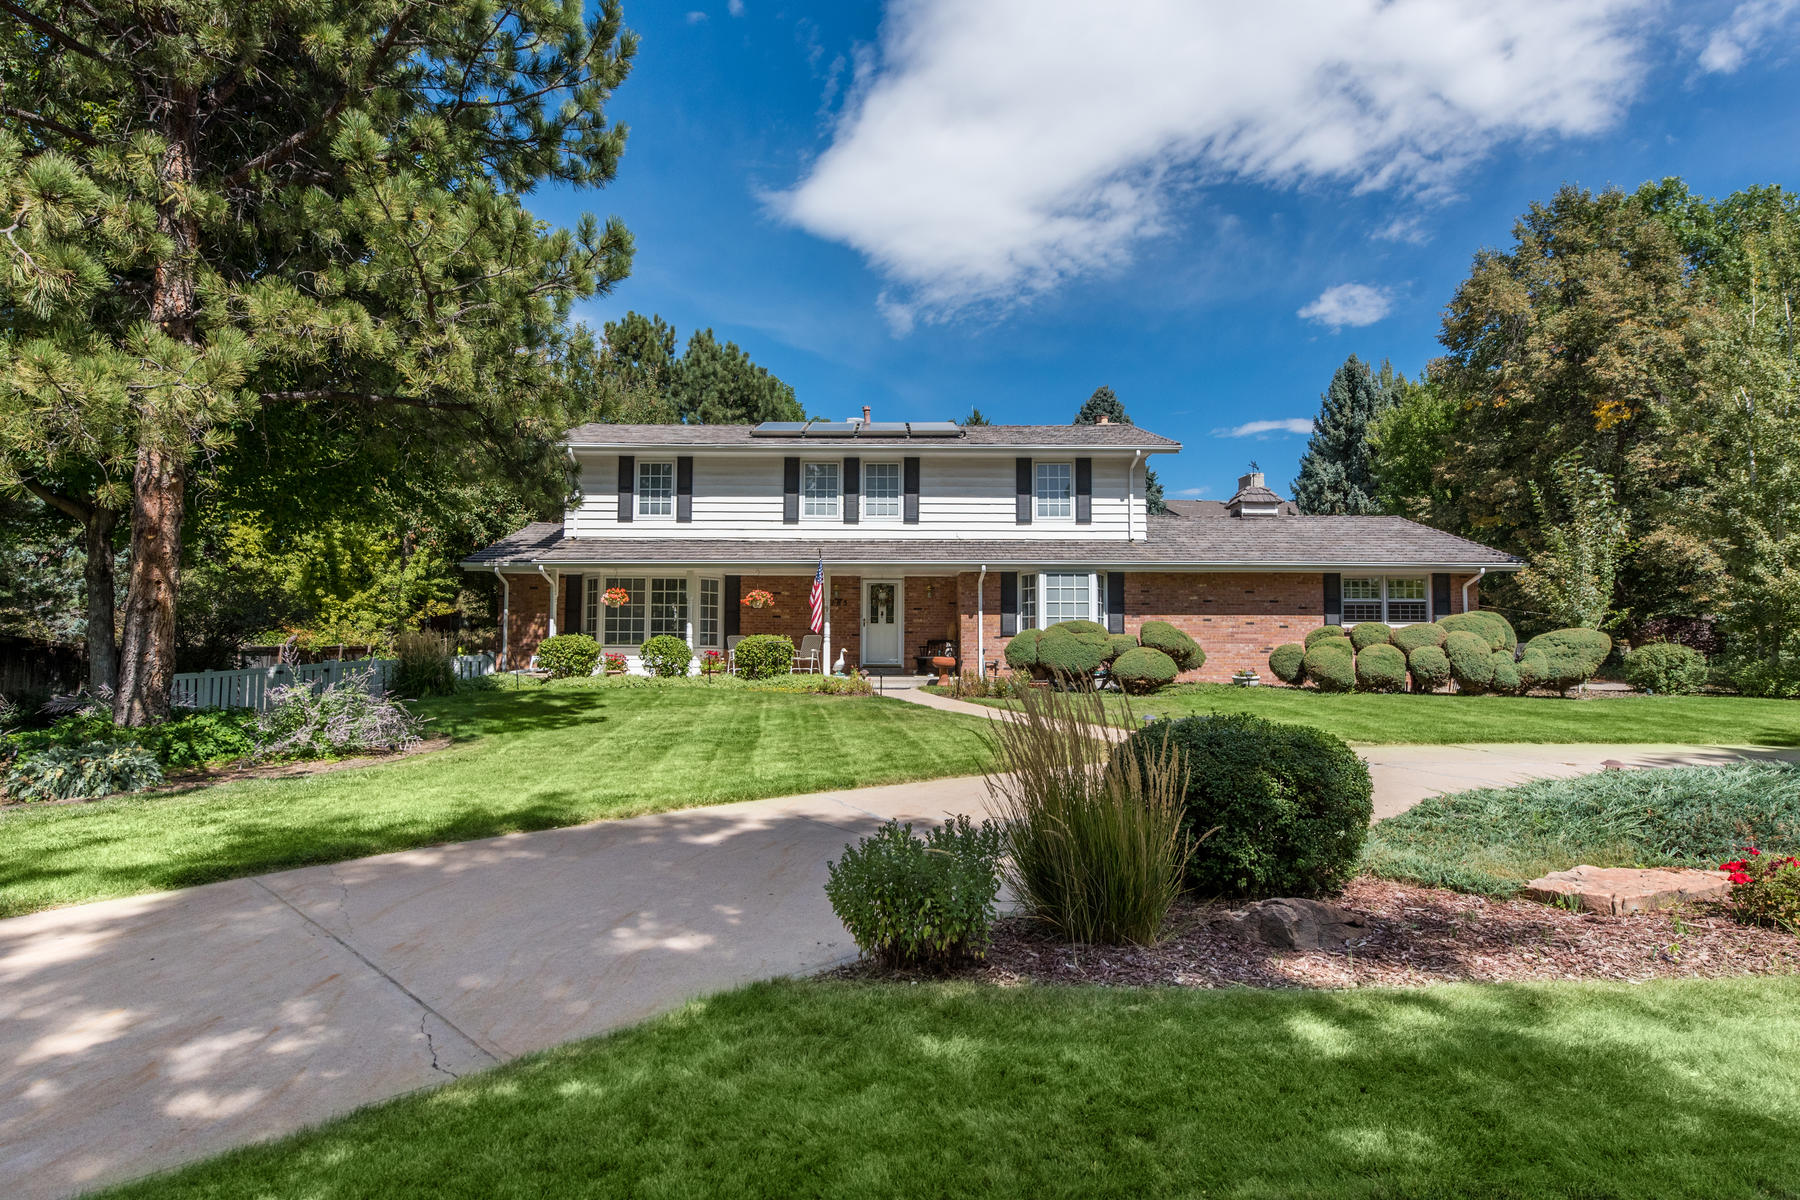 Single Family Home for Active at Incredible Opportunity In Cherry Hills East! 5285 East Oxford Avenue Cherry Hills Village, Colorado 80113 United States